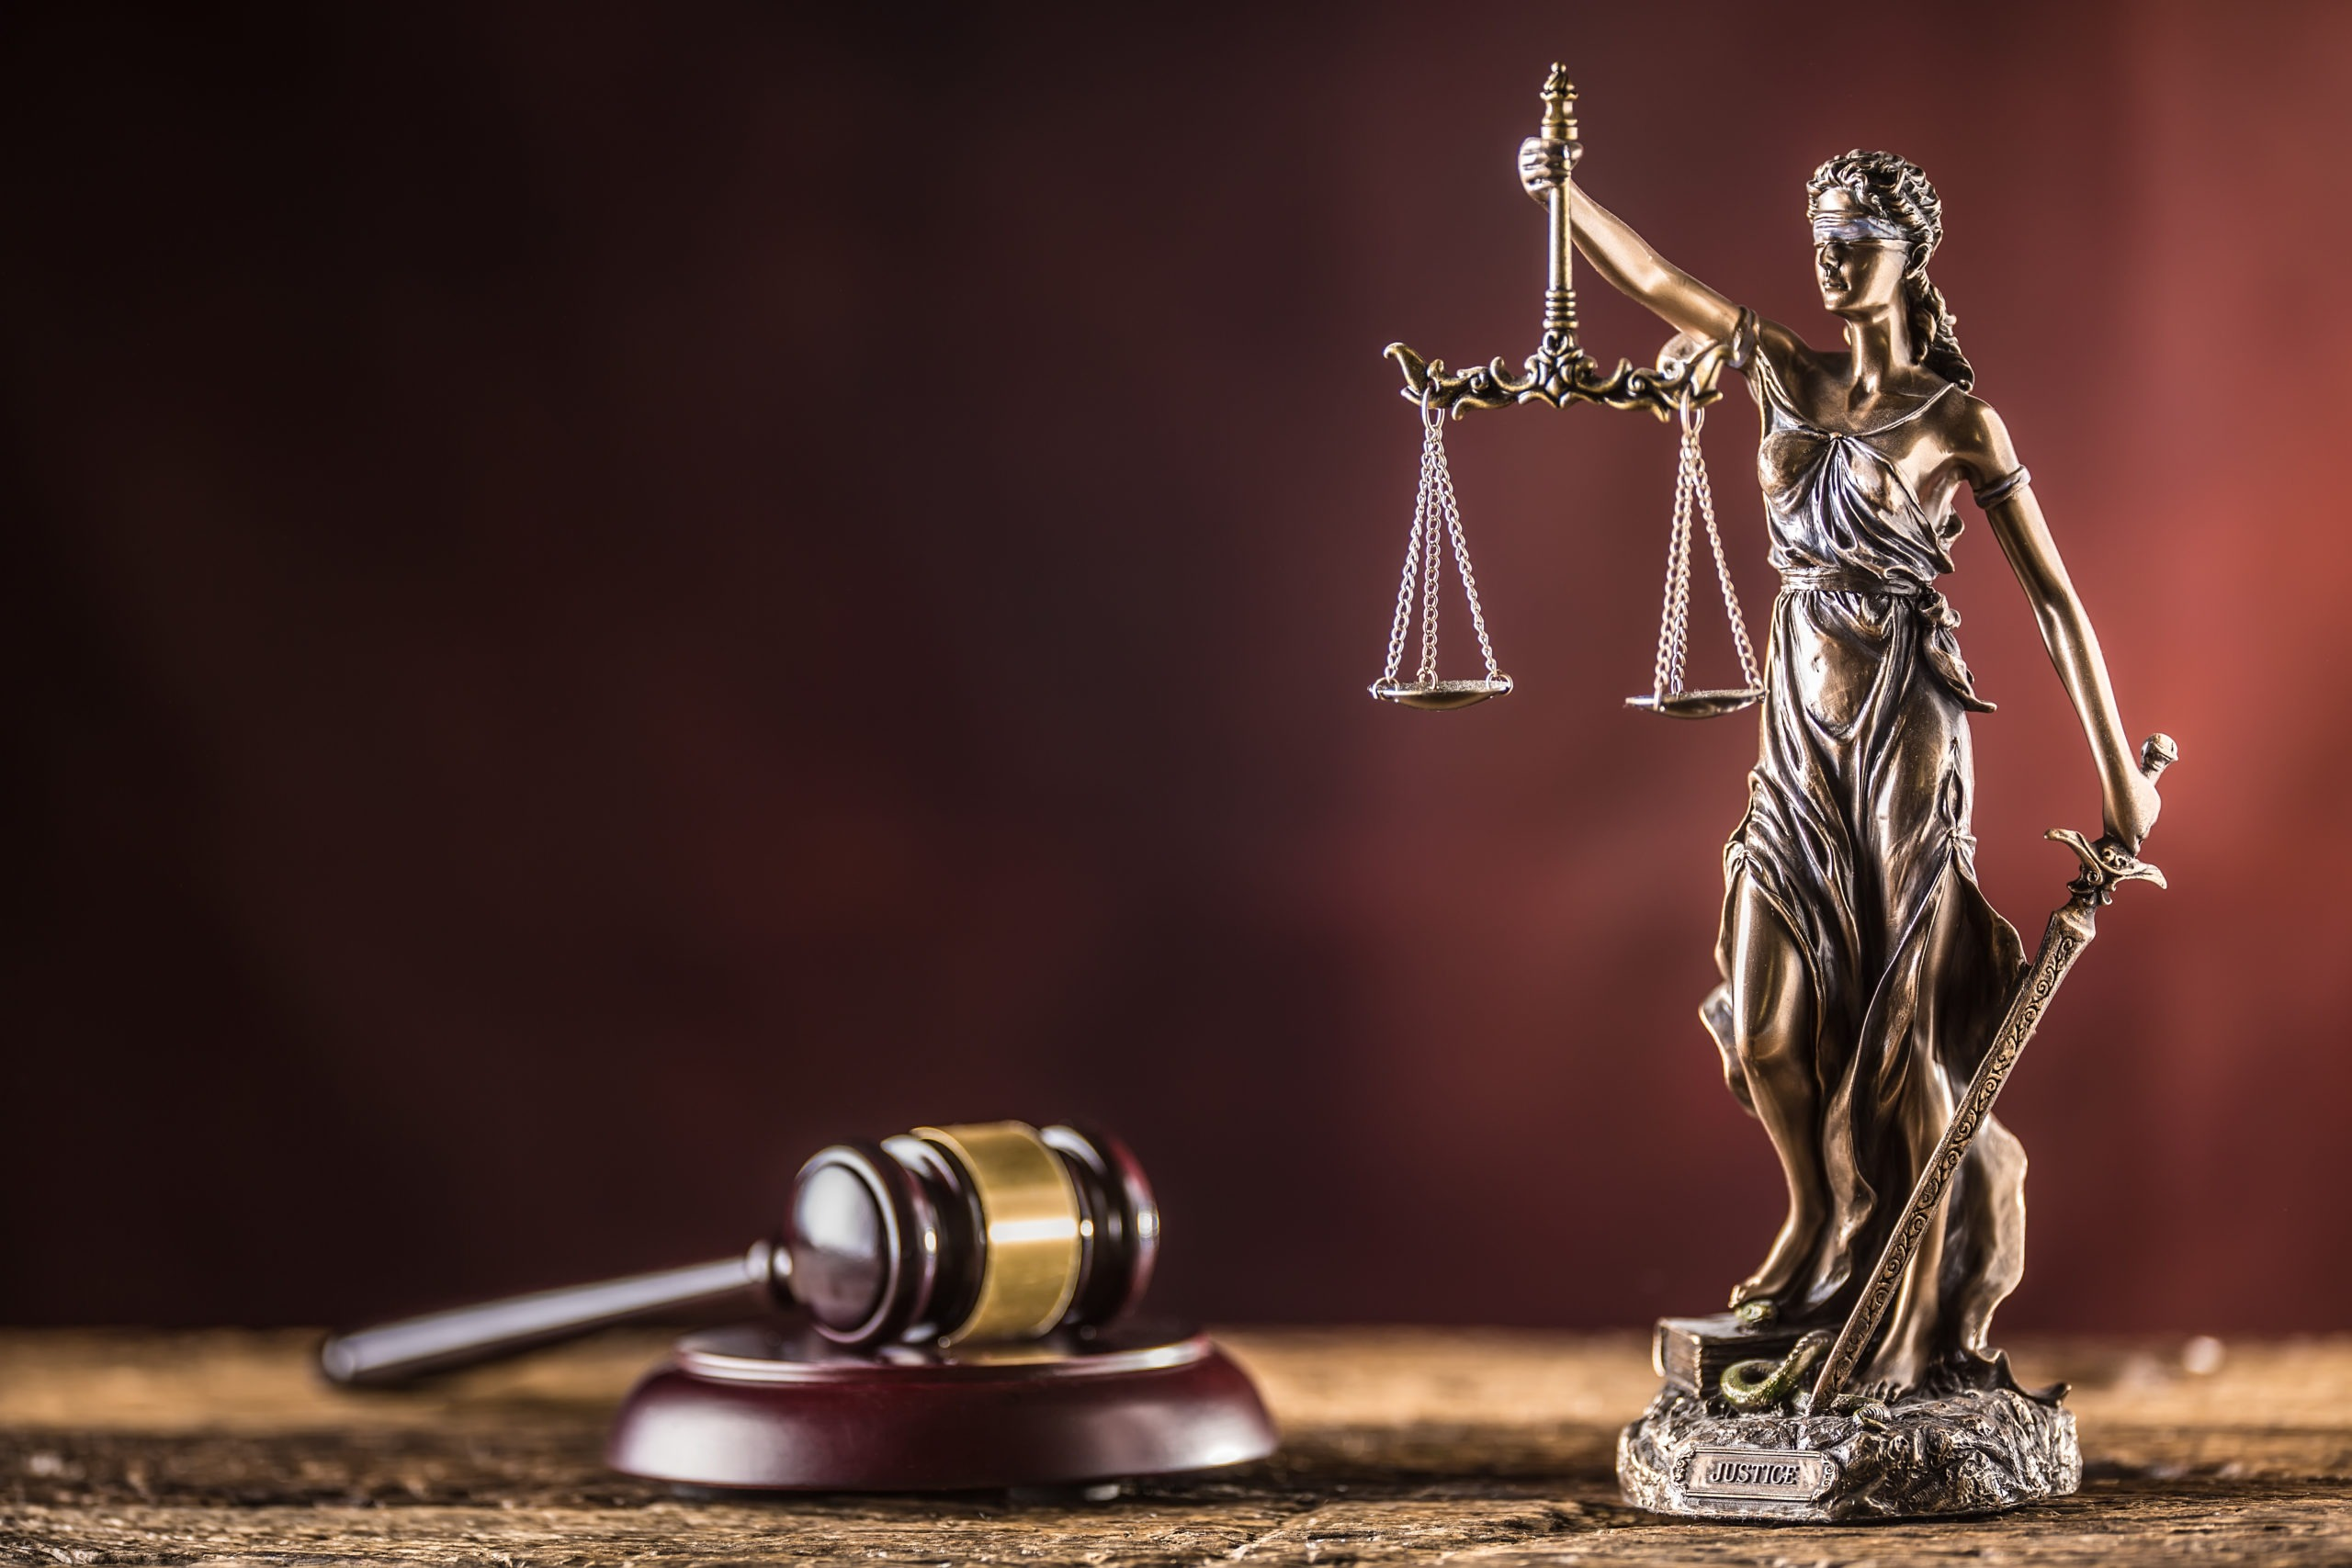 Scales of Justice - How Legal Firms Are Responding to COVID-19